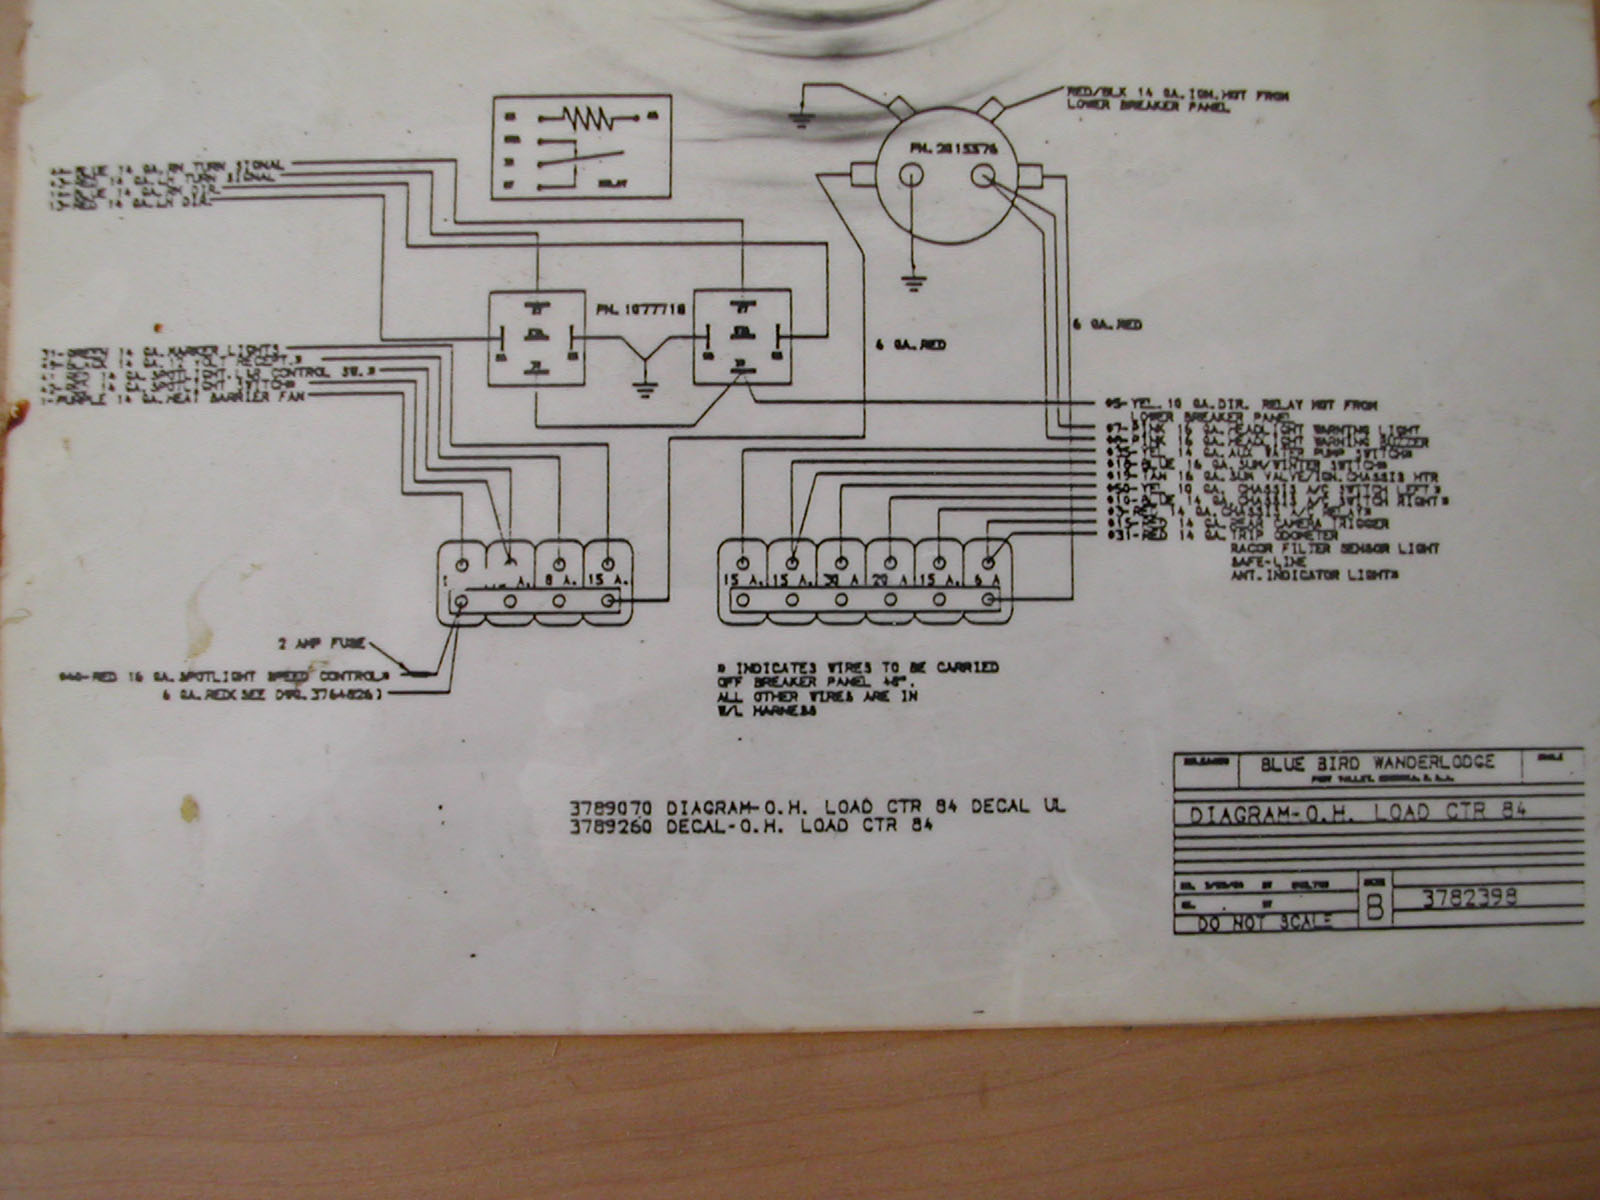 blue bird wire schematics repair manual  blue bird wire schematics #10